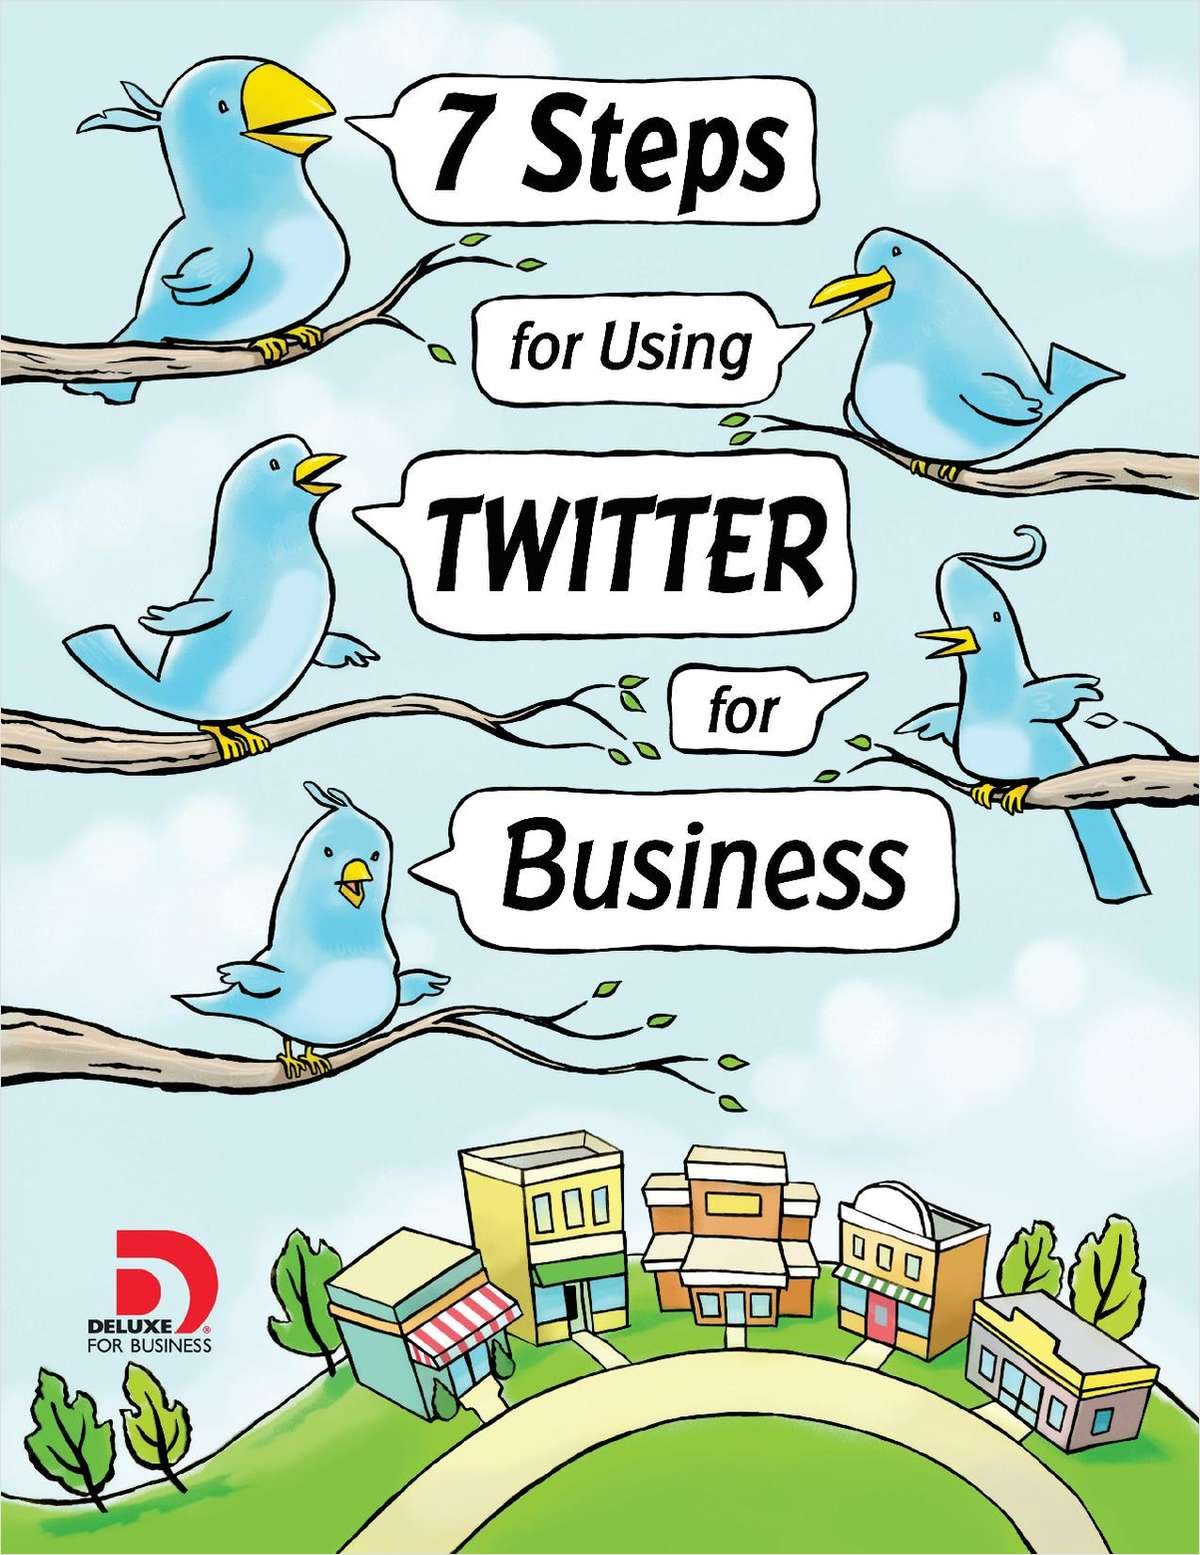 7 Steps for Using Twitter for Small Business